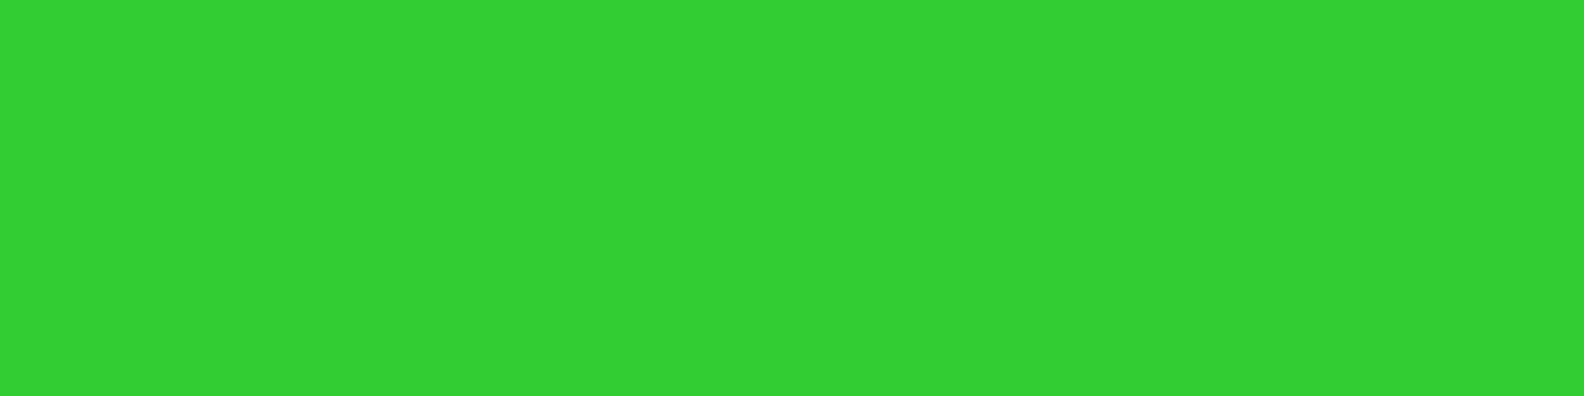 1584x396 Lime Green Solid Color Background